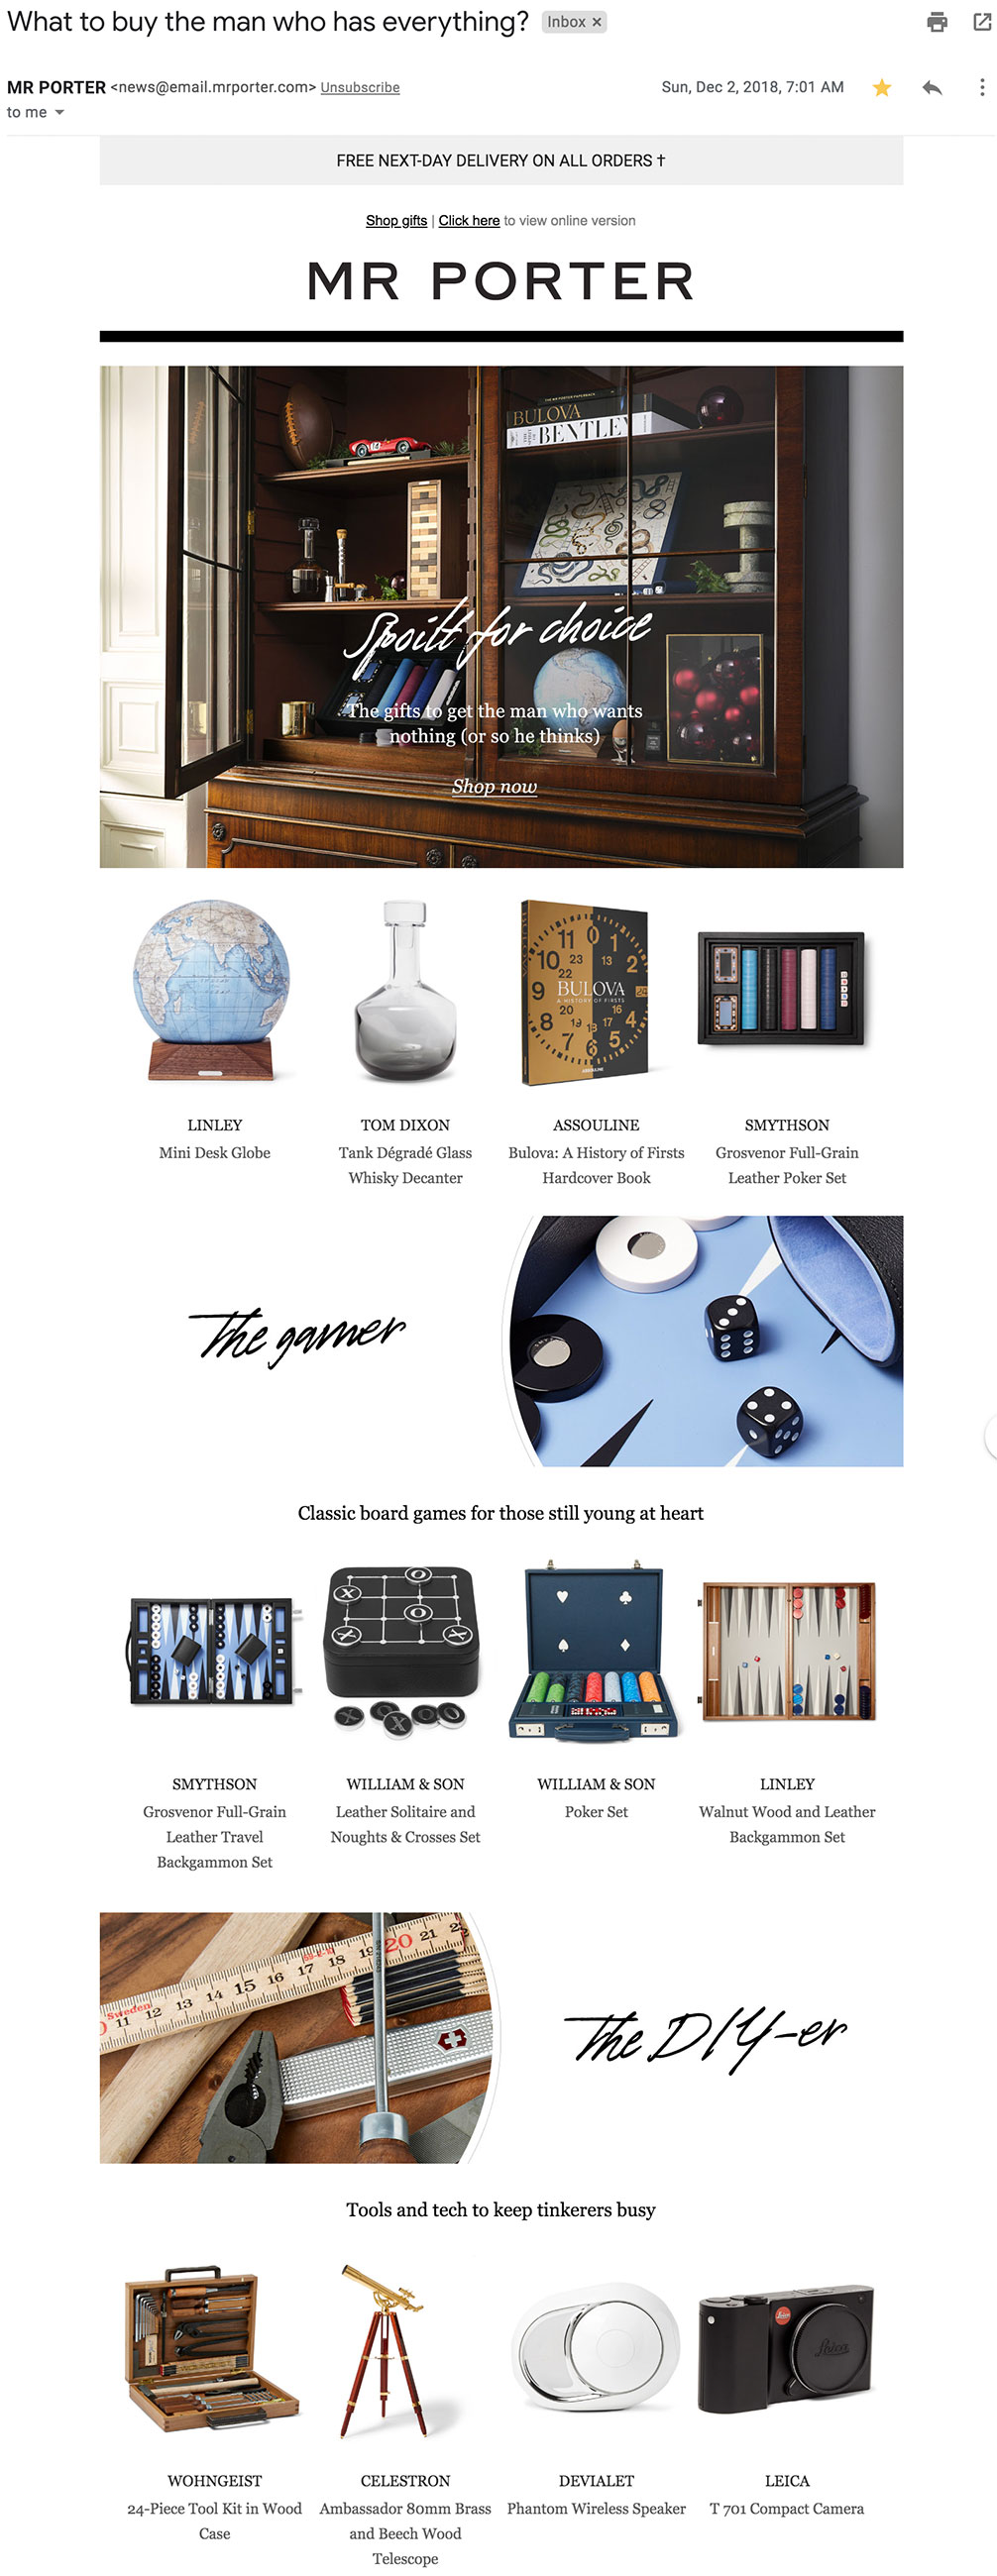 Mr. Porter's gift guide for men.